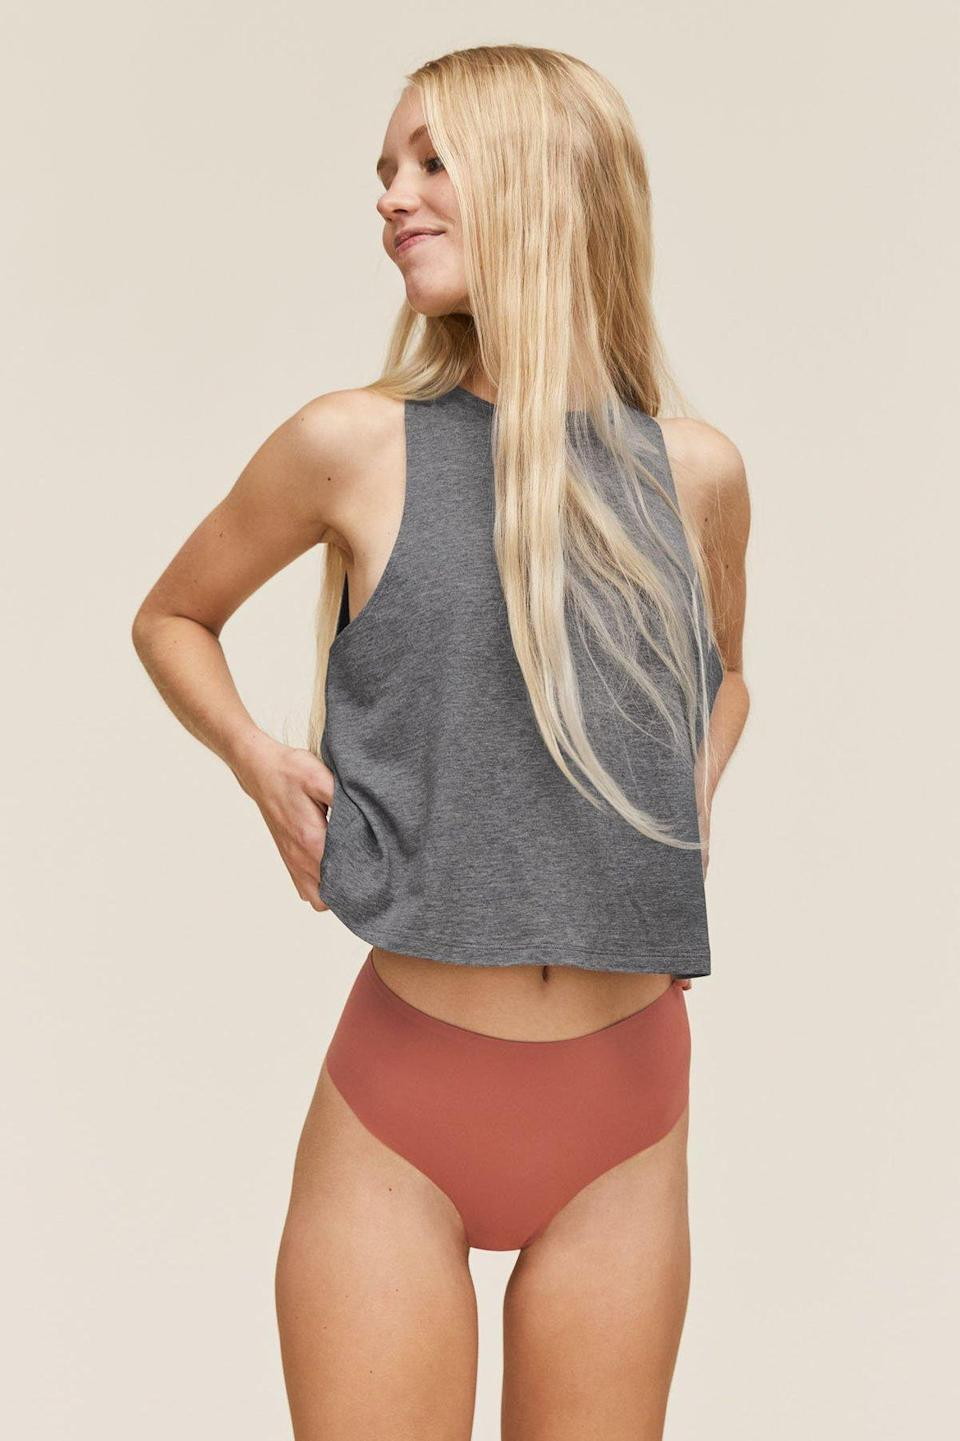 """Just like its best-selling leggings, Girlfriend Collective's underwear is made using recycled water bottles. In other words, you'll feel <em>really</em> good wearing these. $14, Girlfriend Collective. <a href=""""https://www.girlfriend.com/collections/underwear/products/copper-high-rise-thong"""" rel=""""nofollow noopener"""" target=""""_blank"""" data-ylk=""""slk:Get it now!"""" class=""""link rapid-noclick-resp"""">Get it now!</a>"""